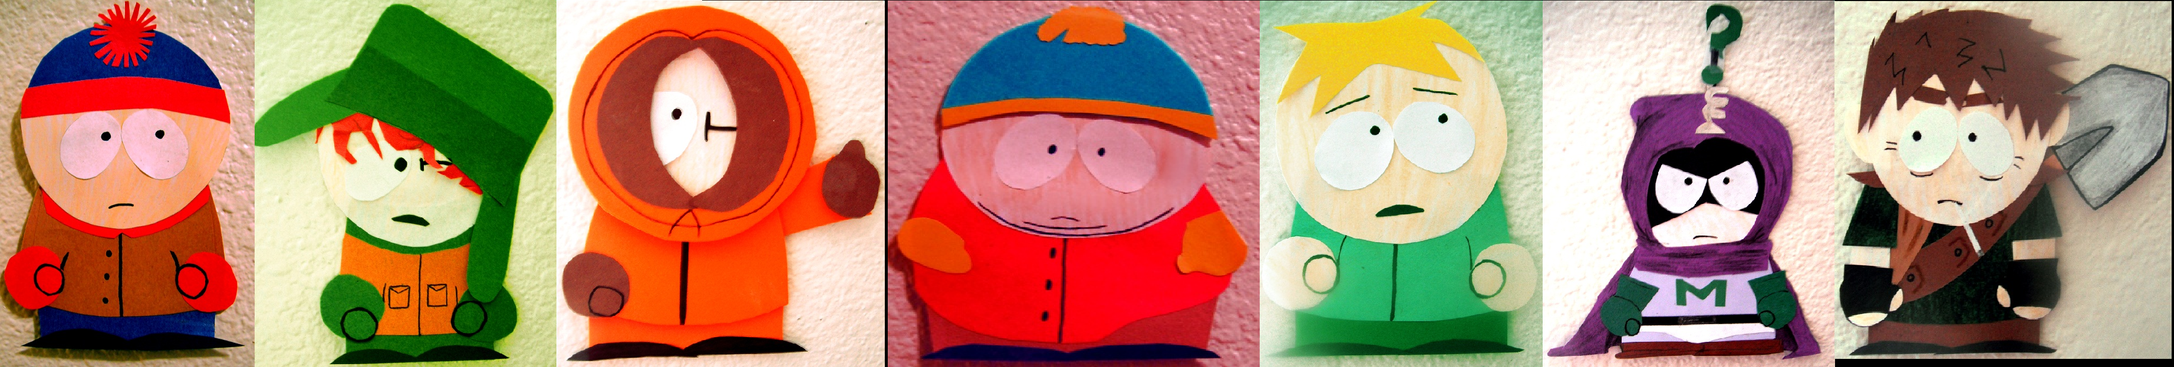 South Park Cut-Outs by CookiemonsterMS